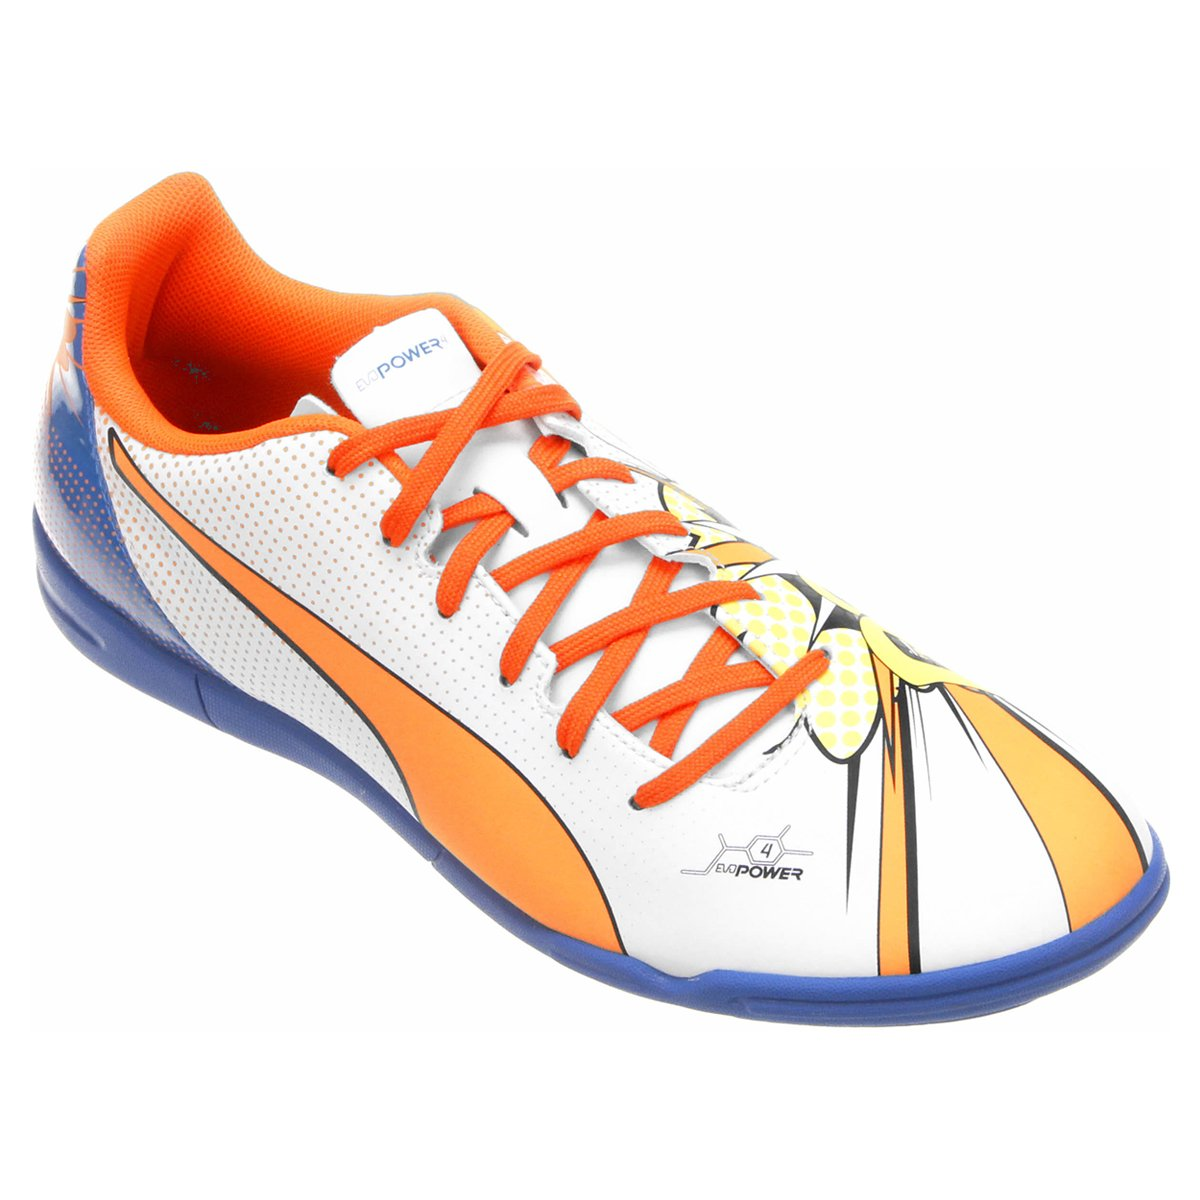 169d1782b Chuteira Futsal Puma Evopower 4.2 Pop IT Masculina